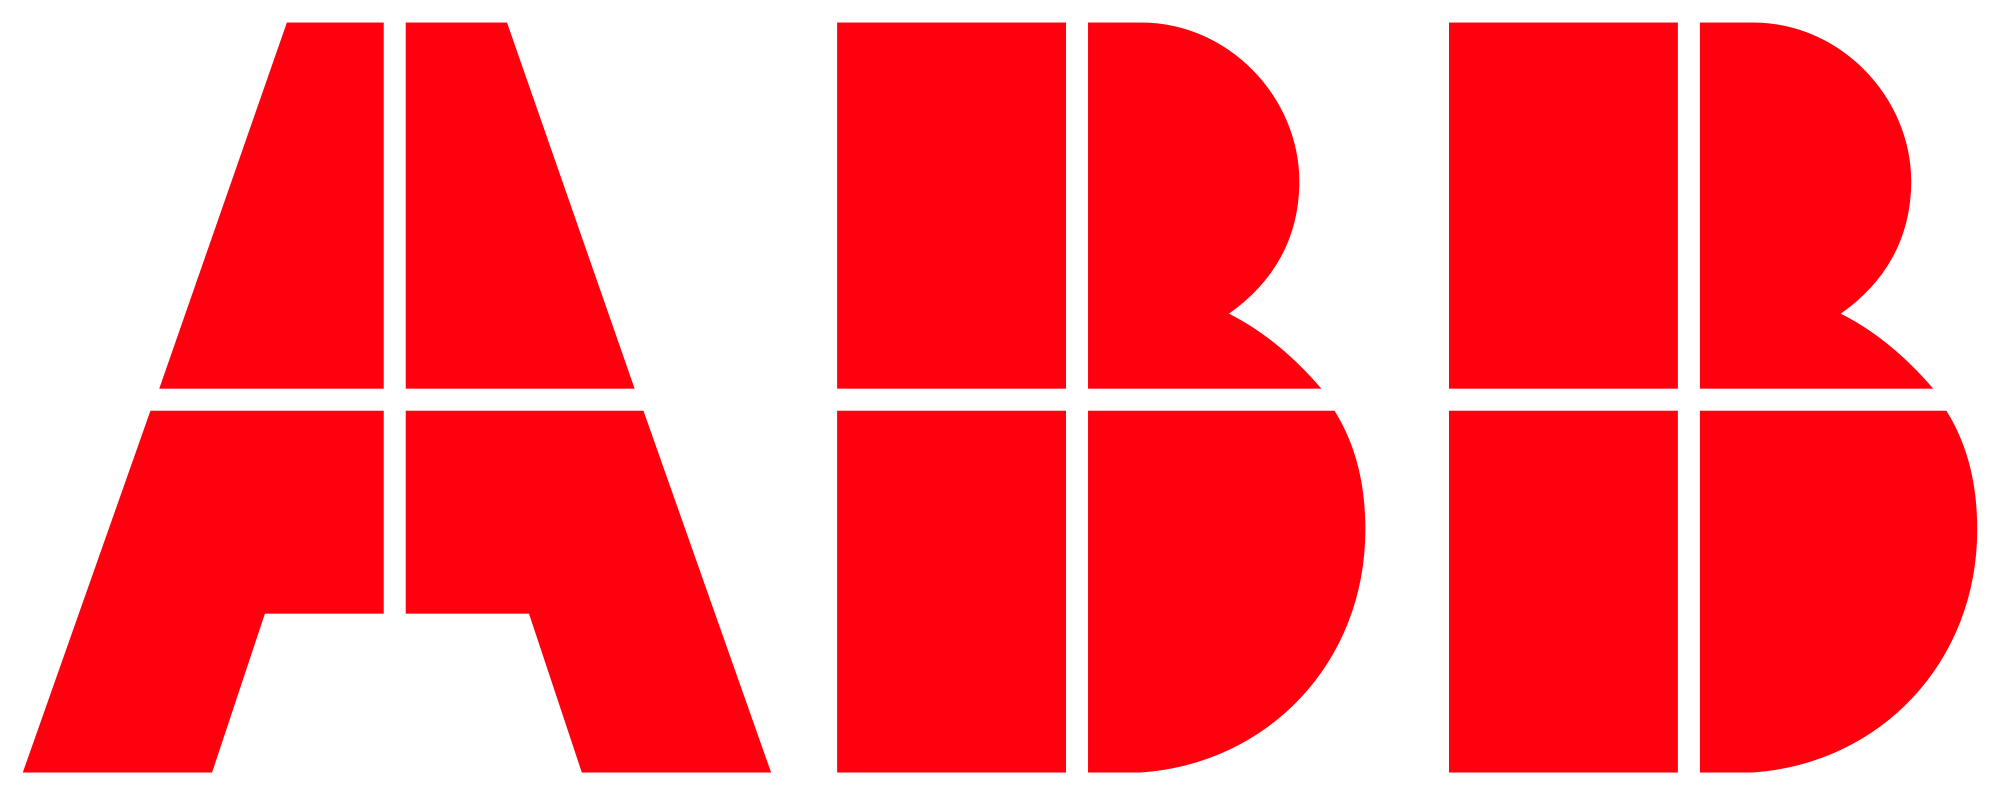 ABB On-Track Safety